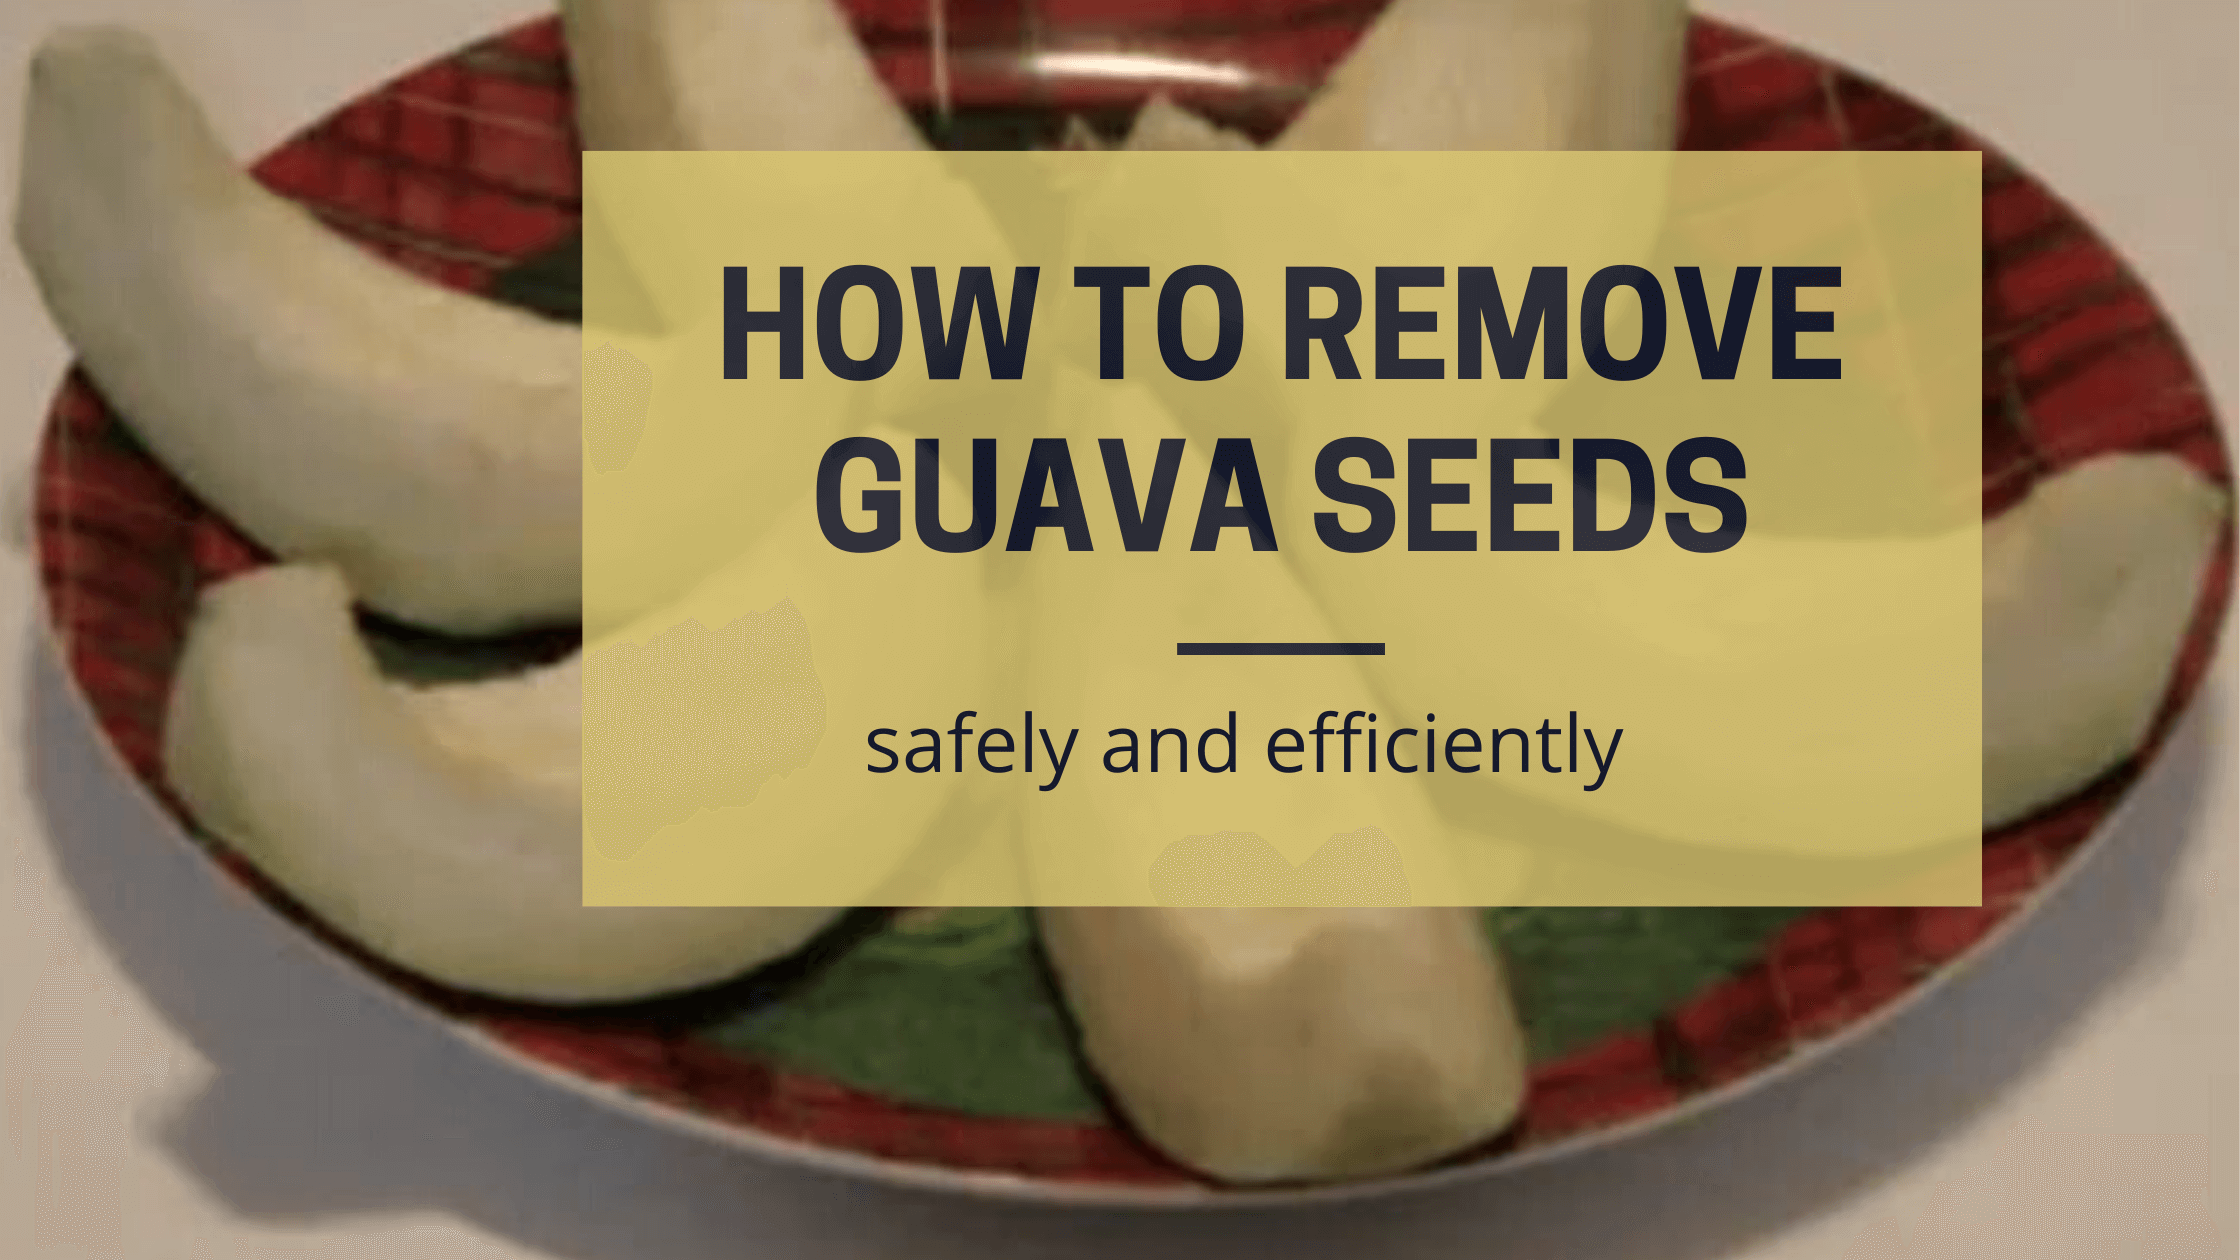 How to remove Guava seeds (1) (1)